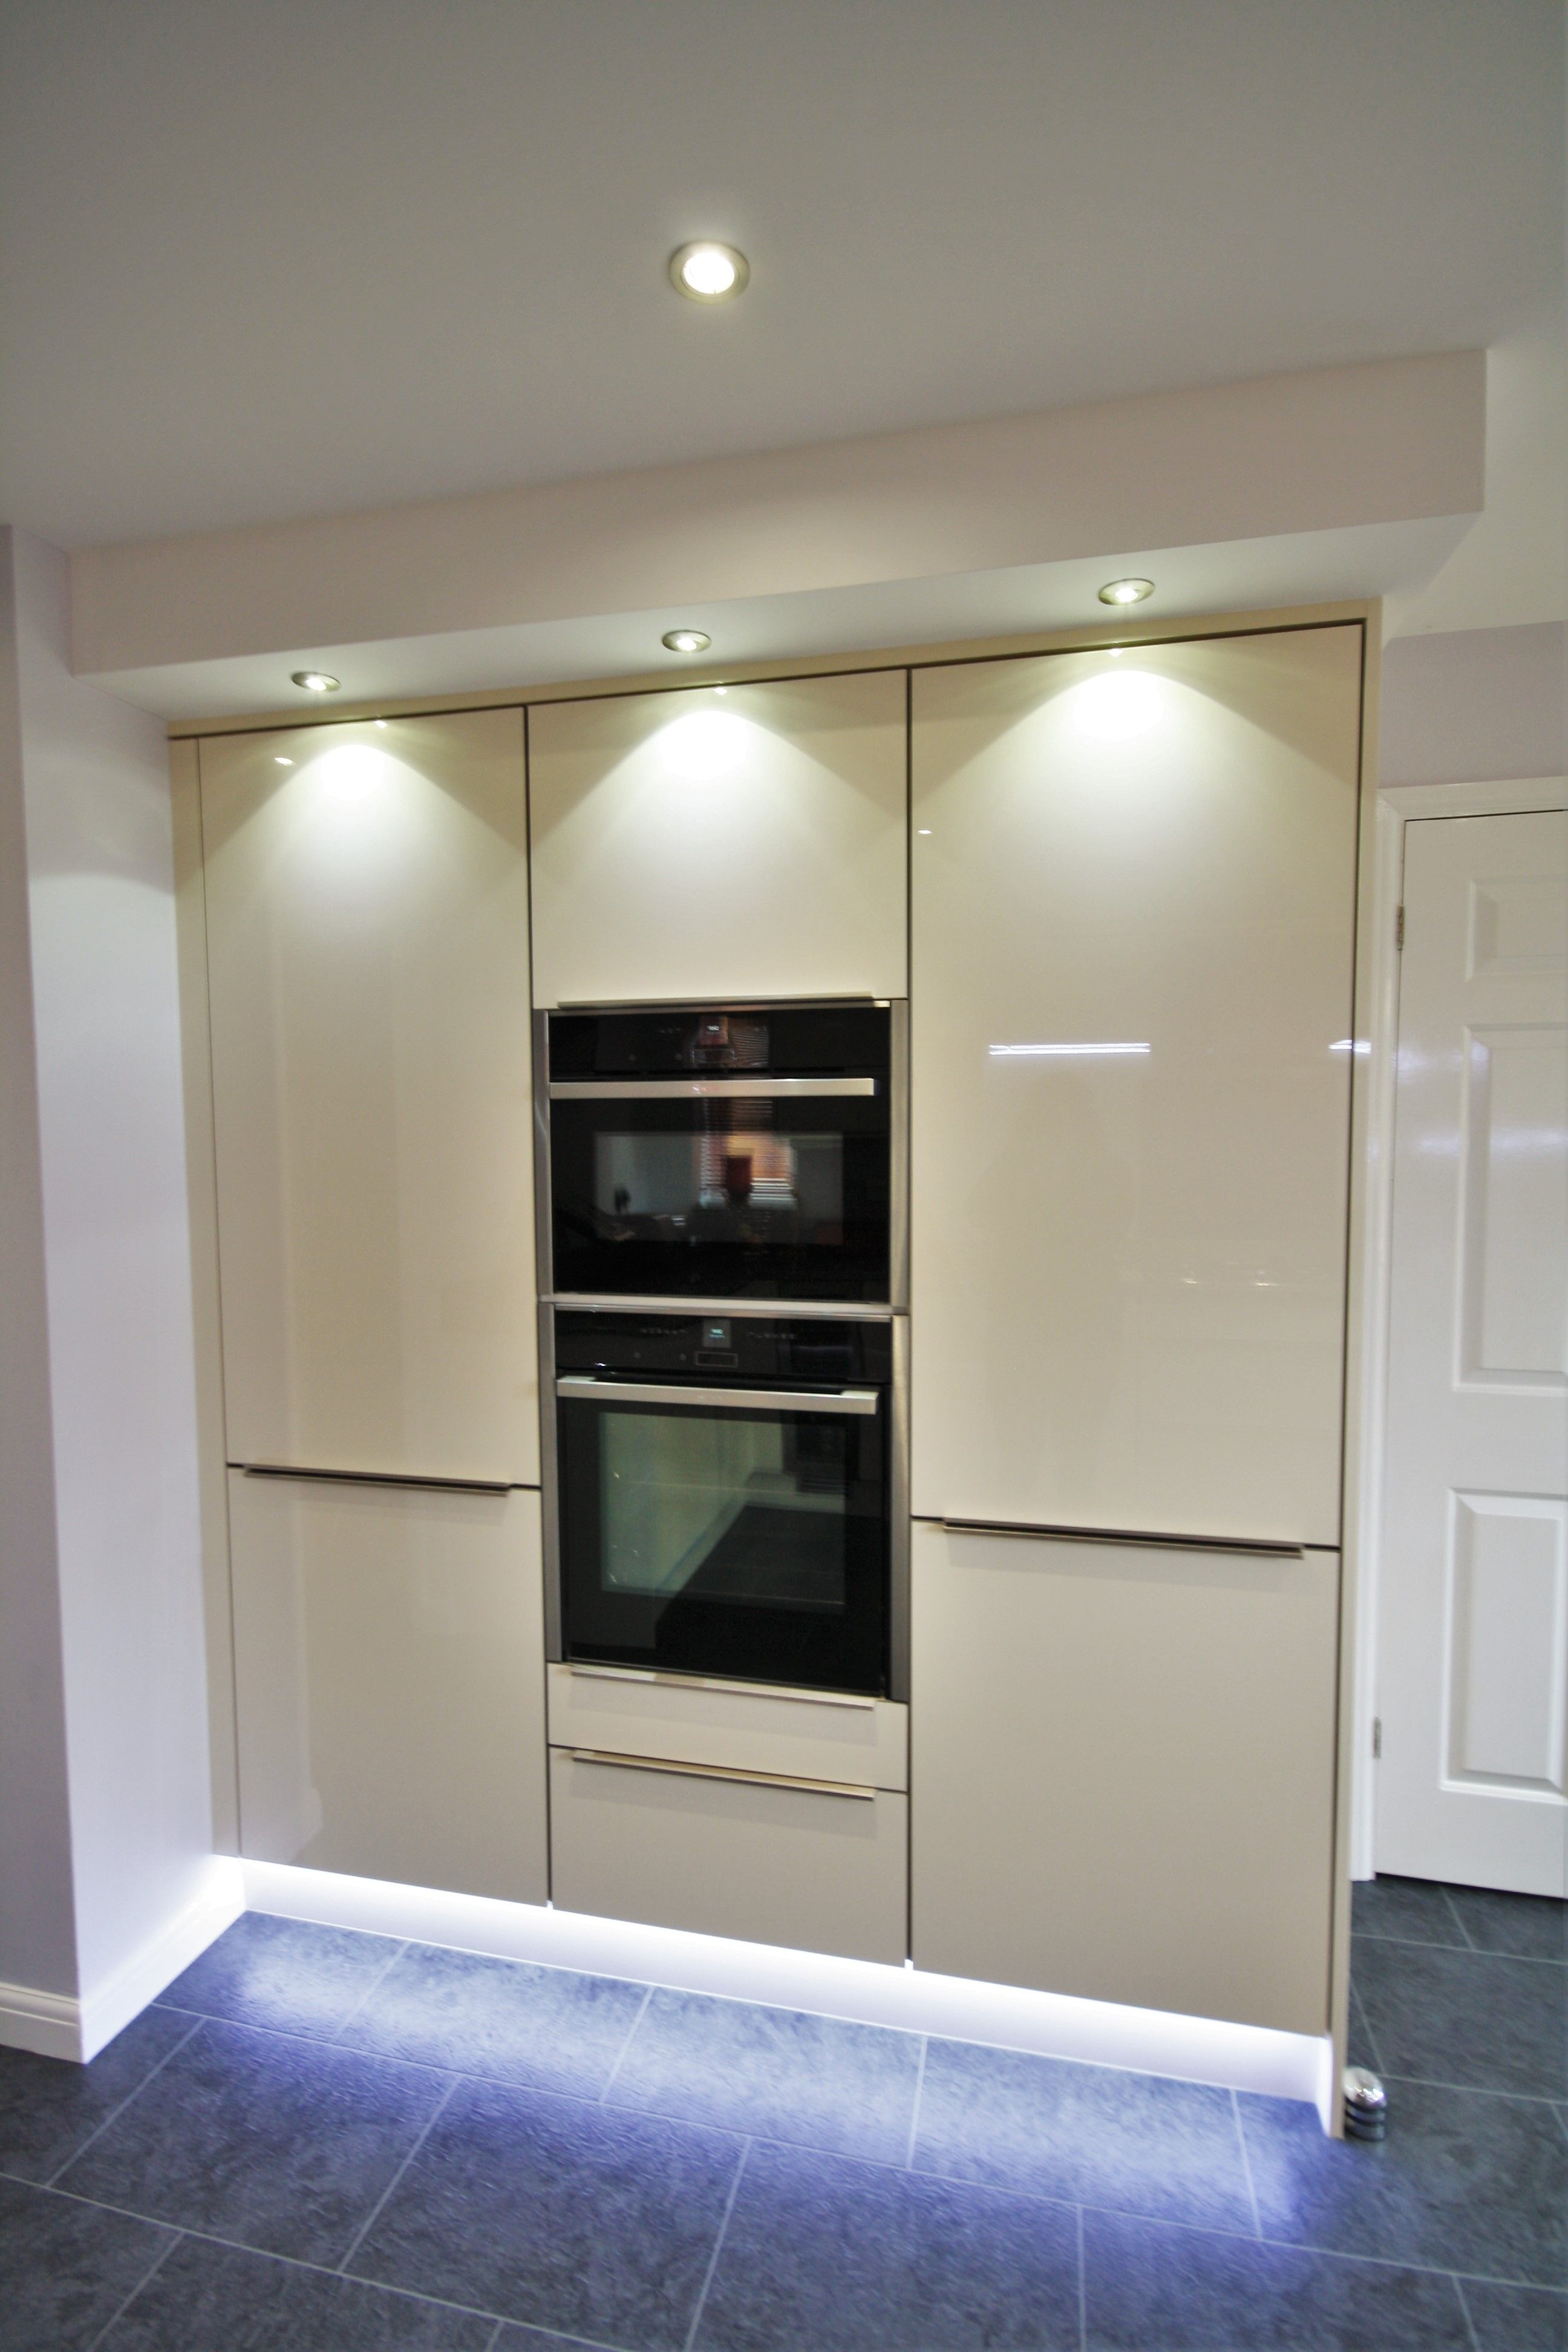 Tower unit with two stacked Neff appliances storage to